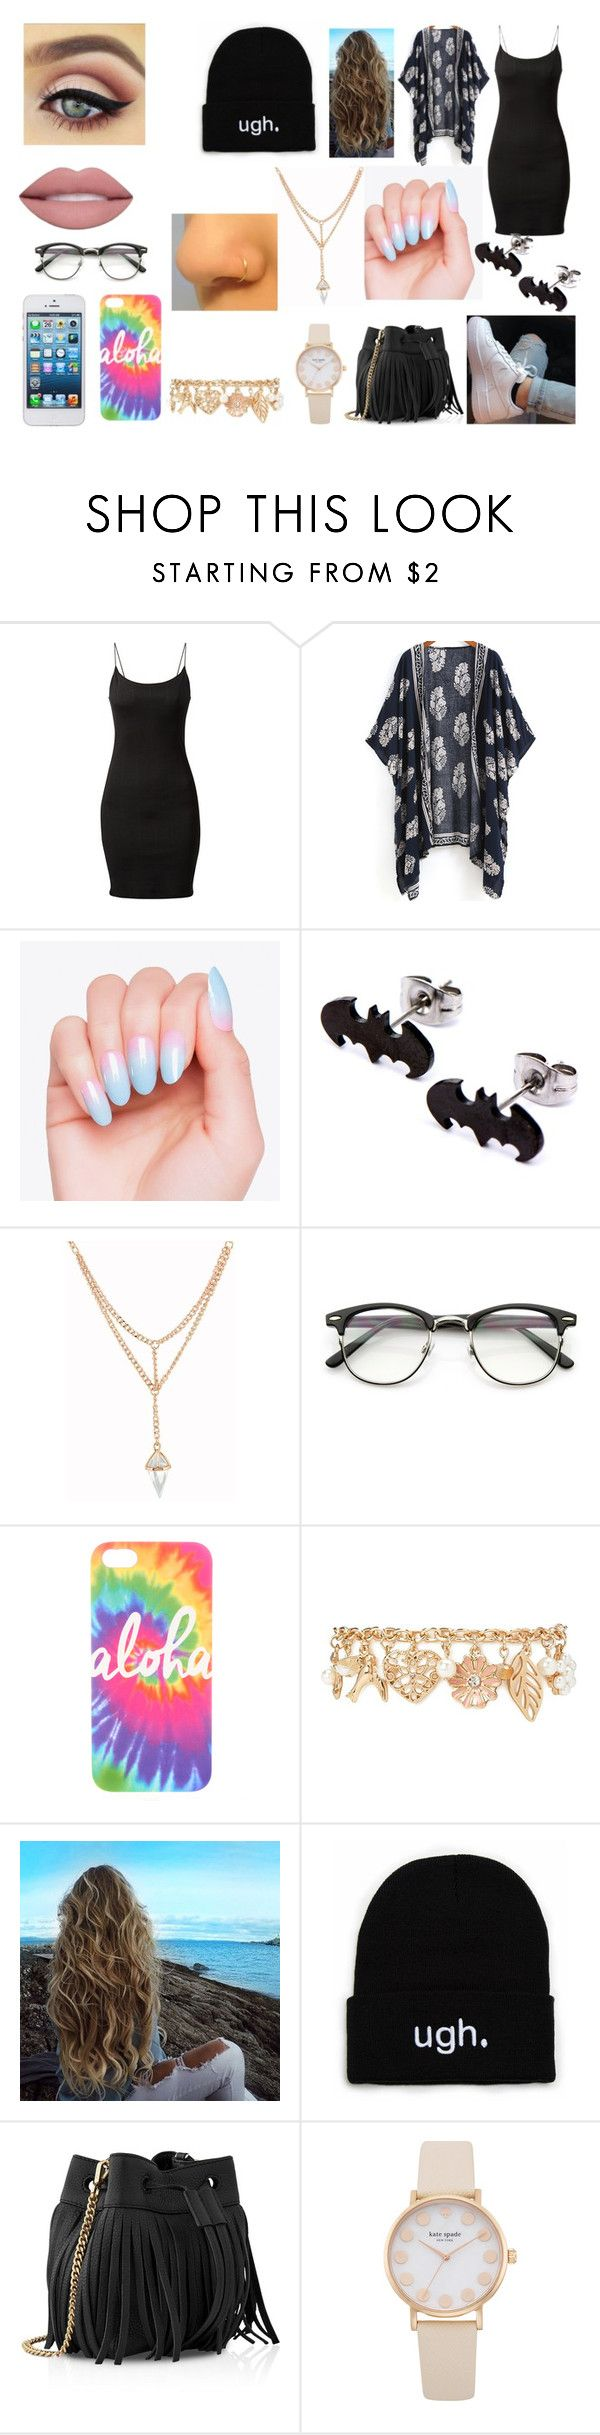 """""""Style Show"""" by littlegirl-02 on Polyvore featuring moda, Forever 21 e Whistles"""